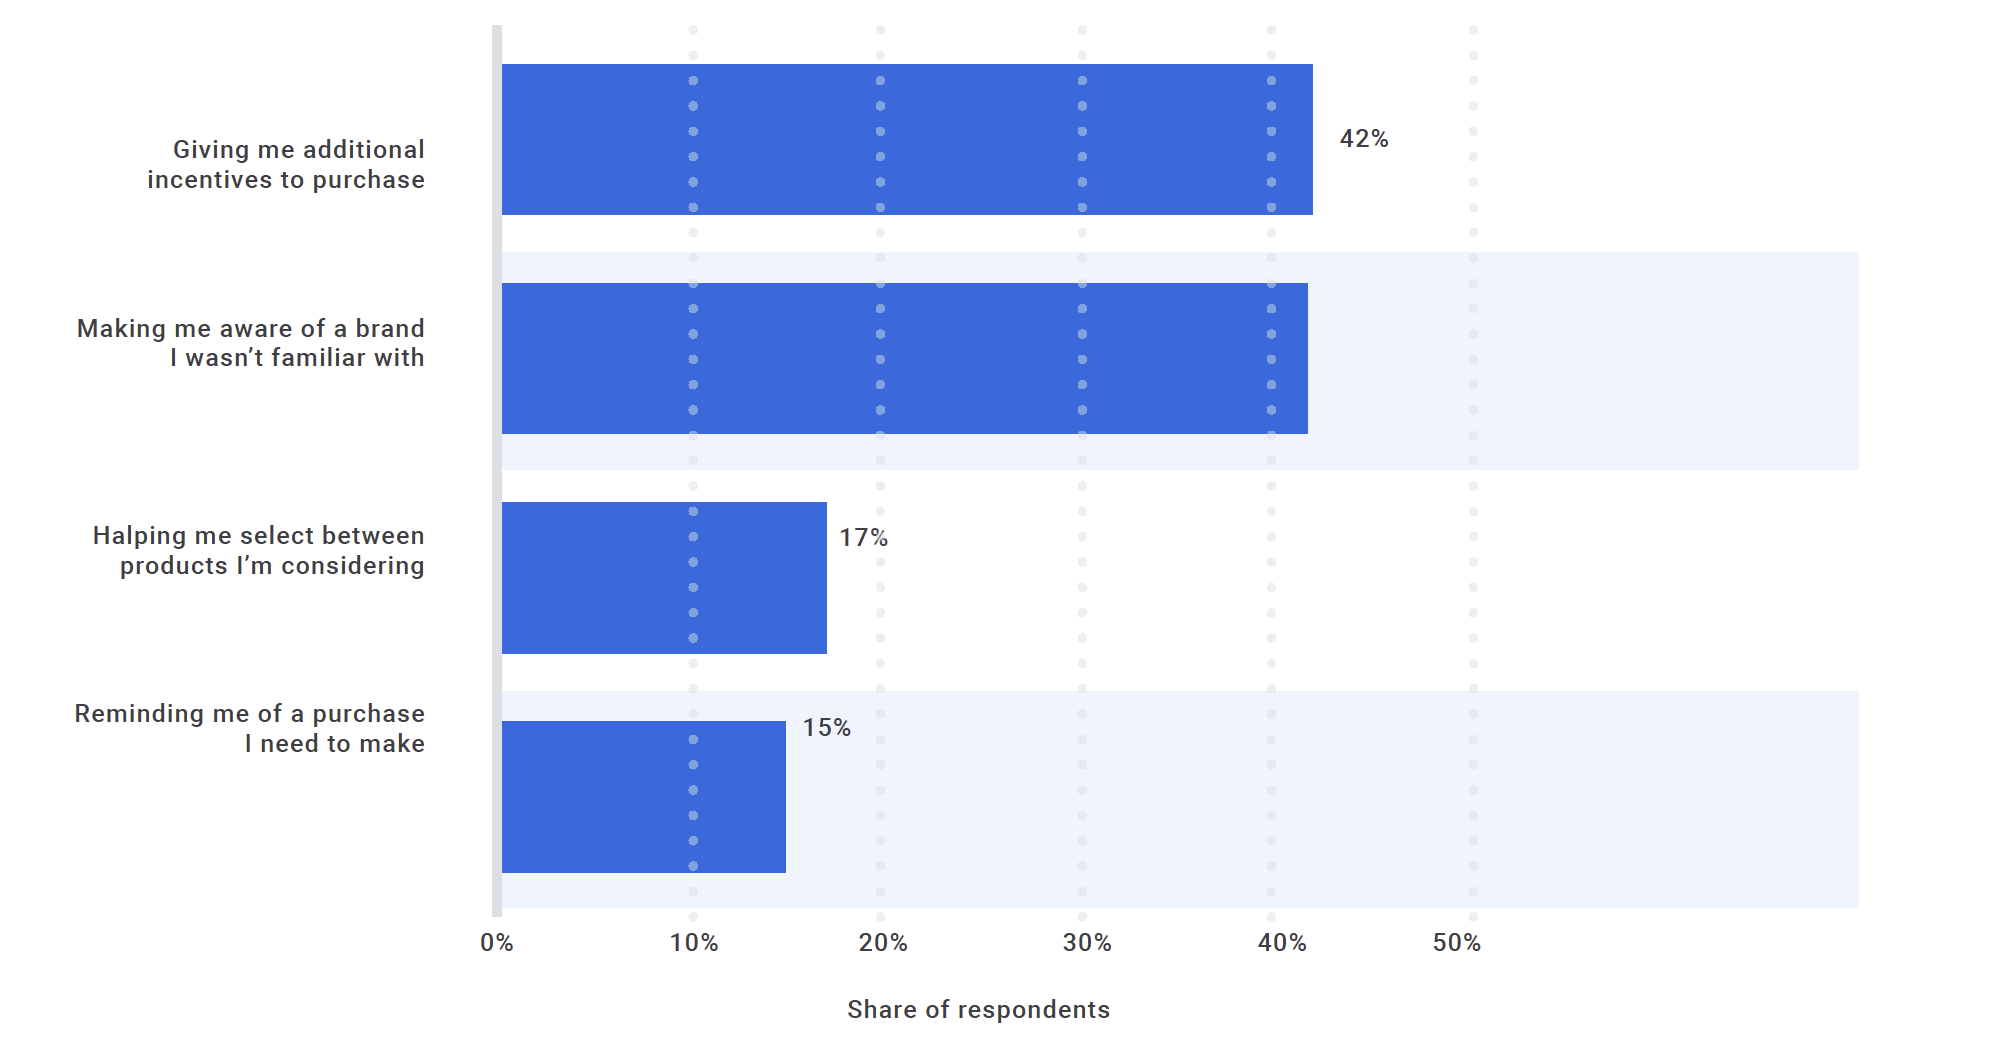 Email has seen an average of 49% subscription list growth across industries year-over-year. Here's a look at leading roles email marketing play in the consumer purchase process within the United States